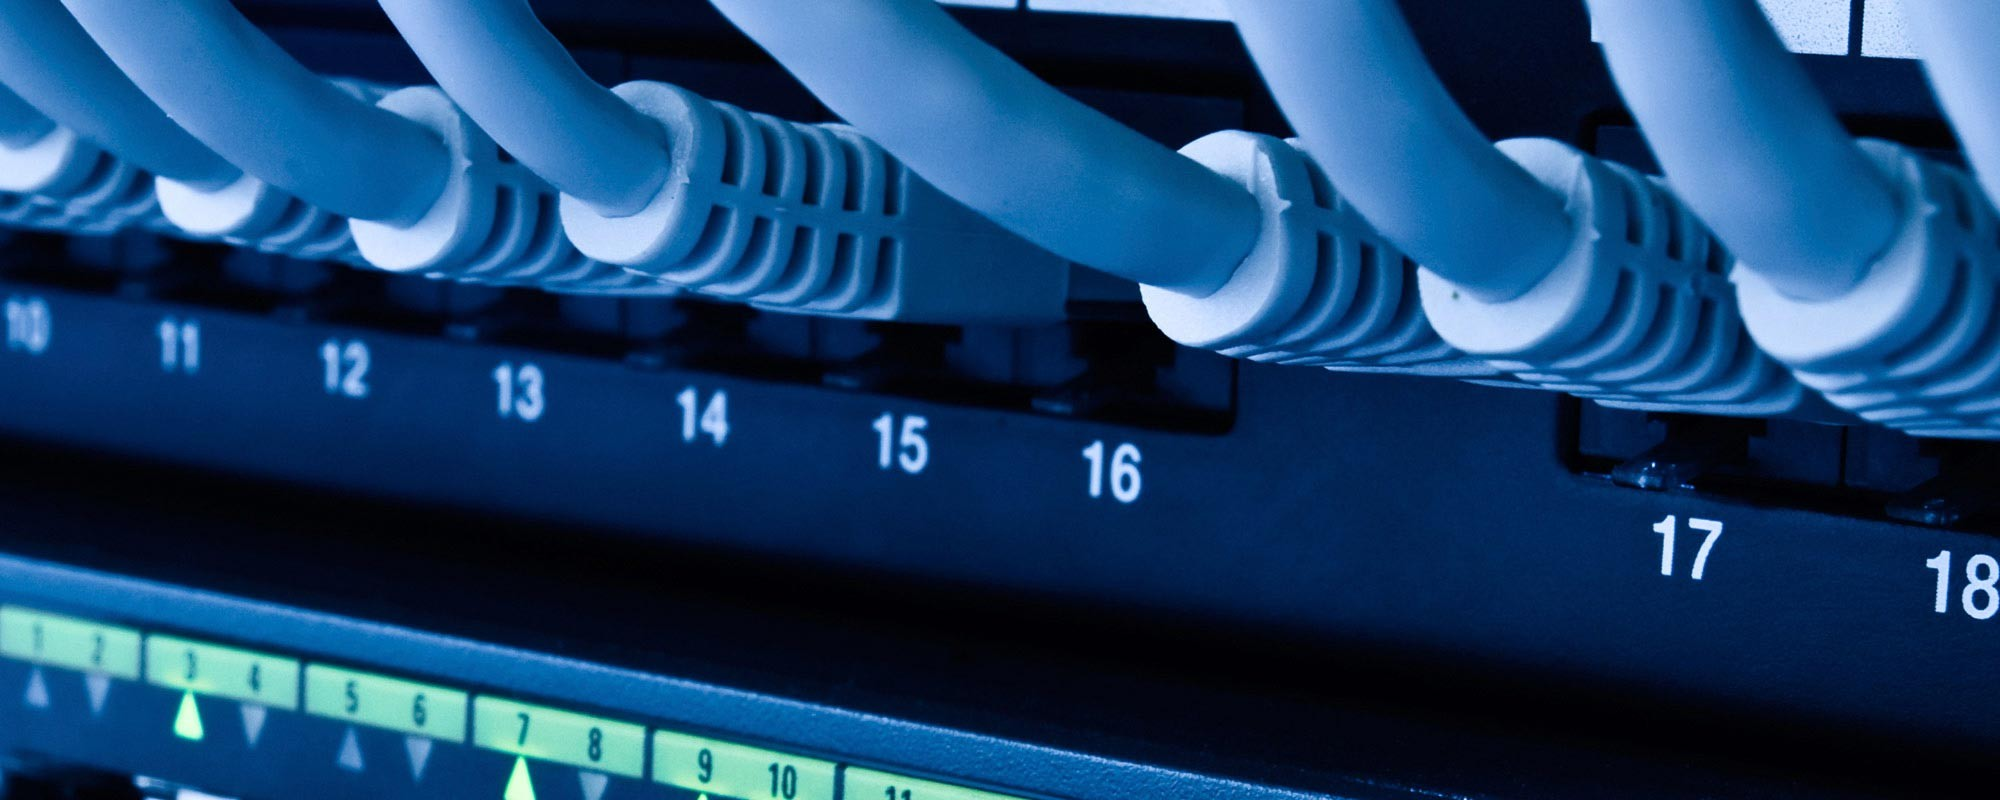 Maximize the Value Of your assets. Transform your network infrastructure.